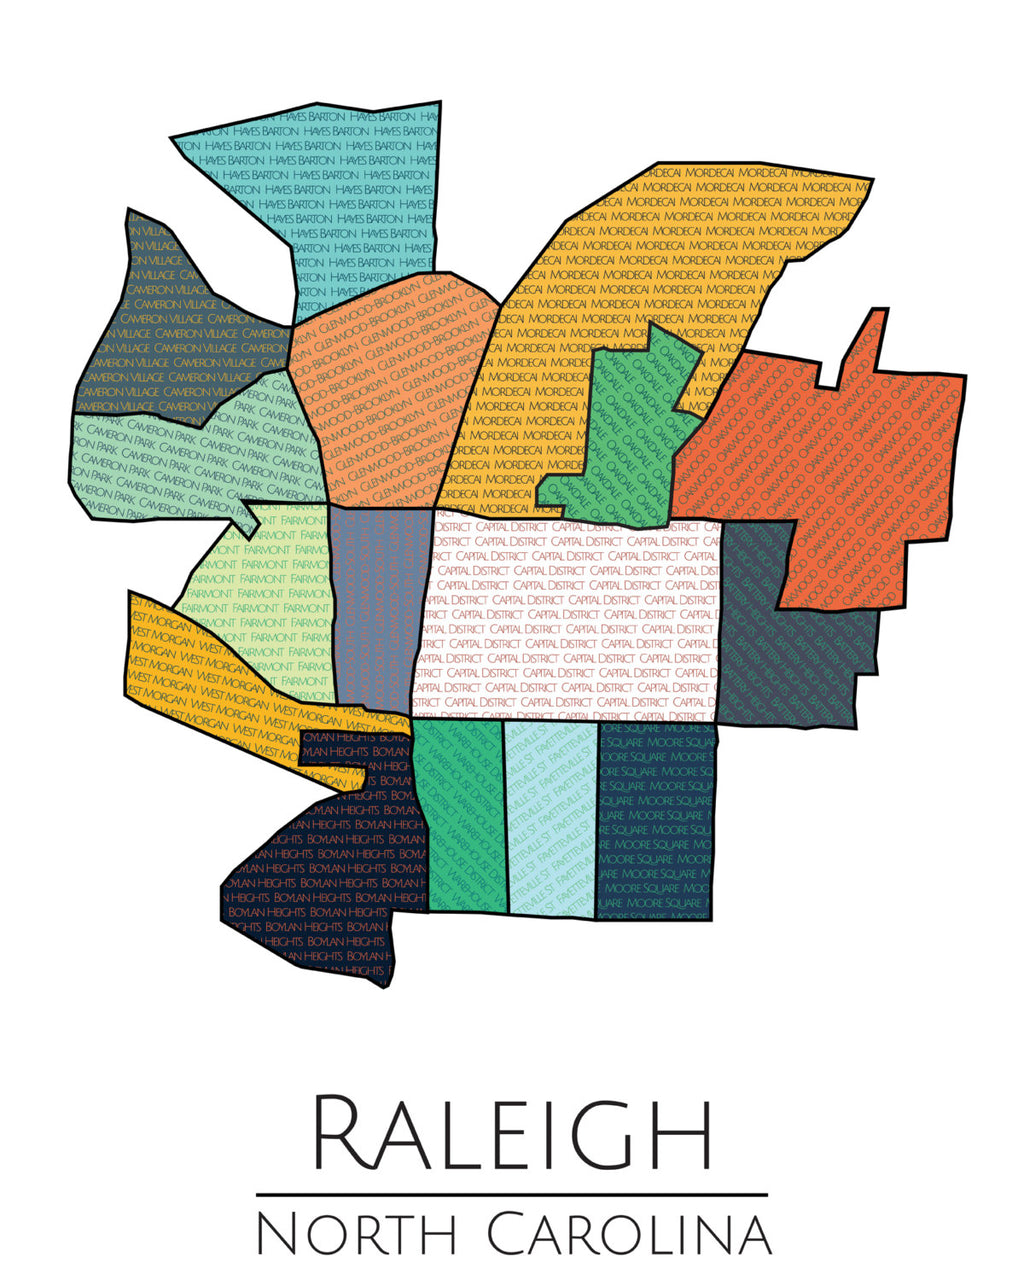 Raleigh North Carolina Poster - ParMar Media - 3